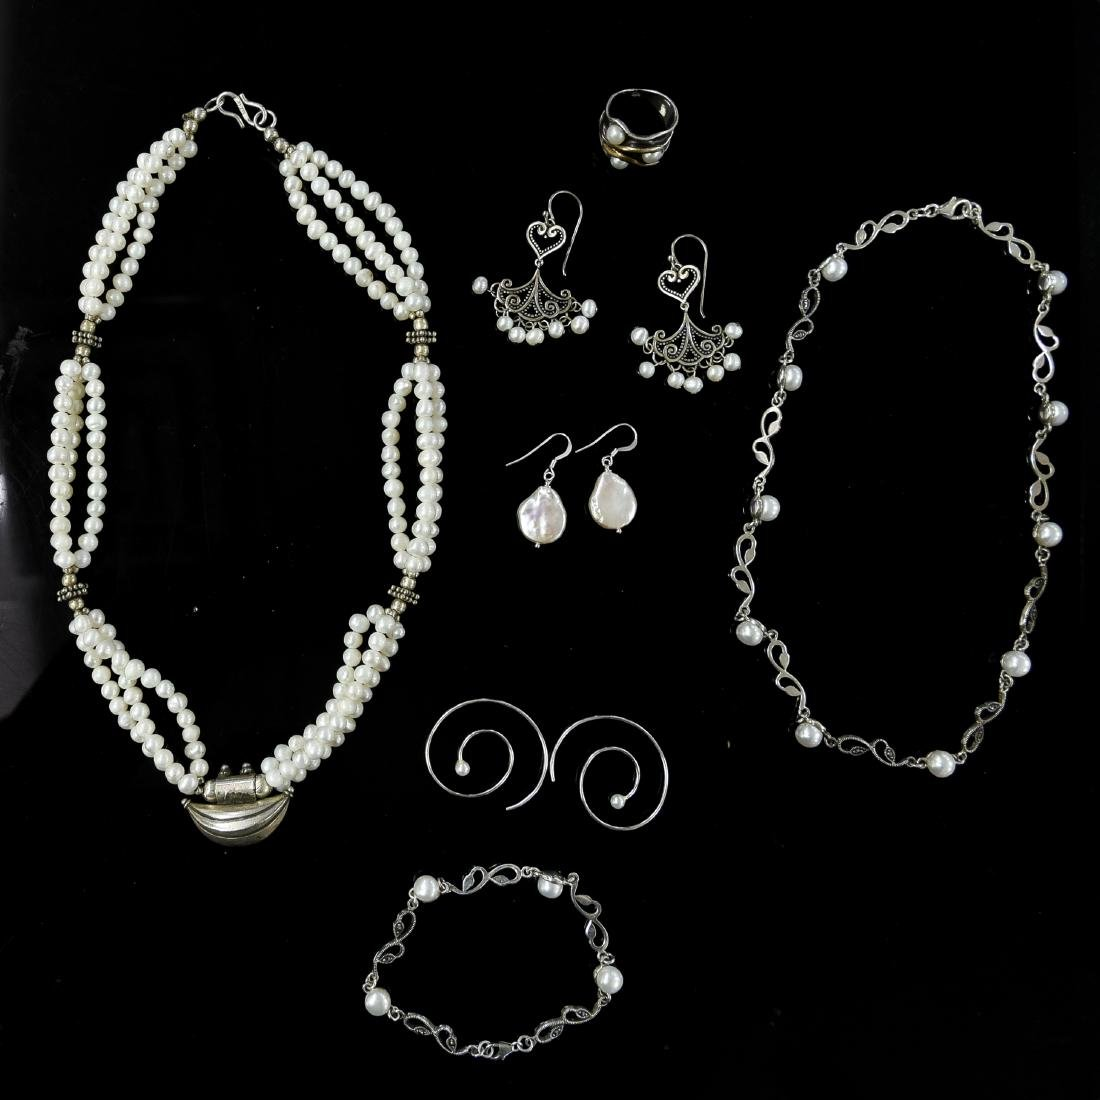 GROUPING OF PEARL AND STERLING JEWELRY